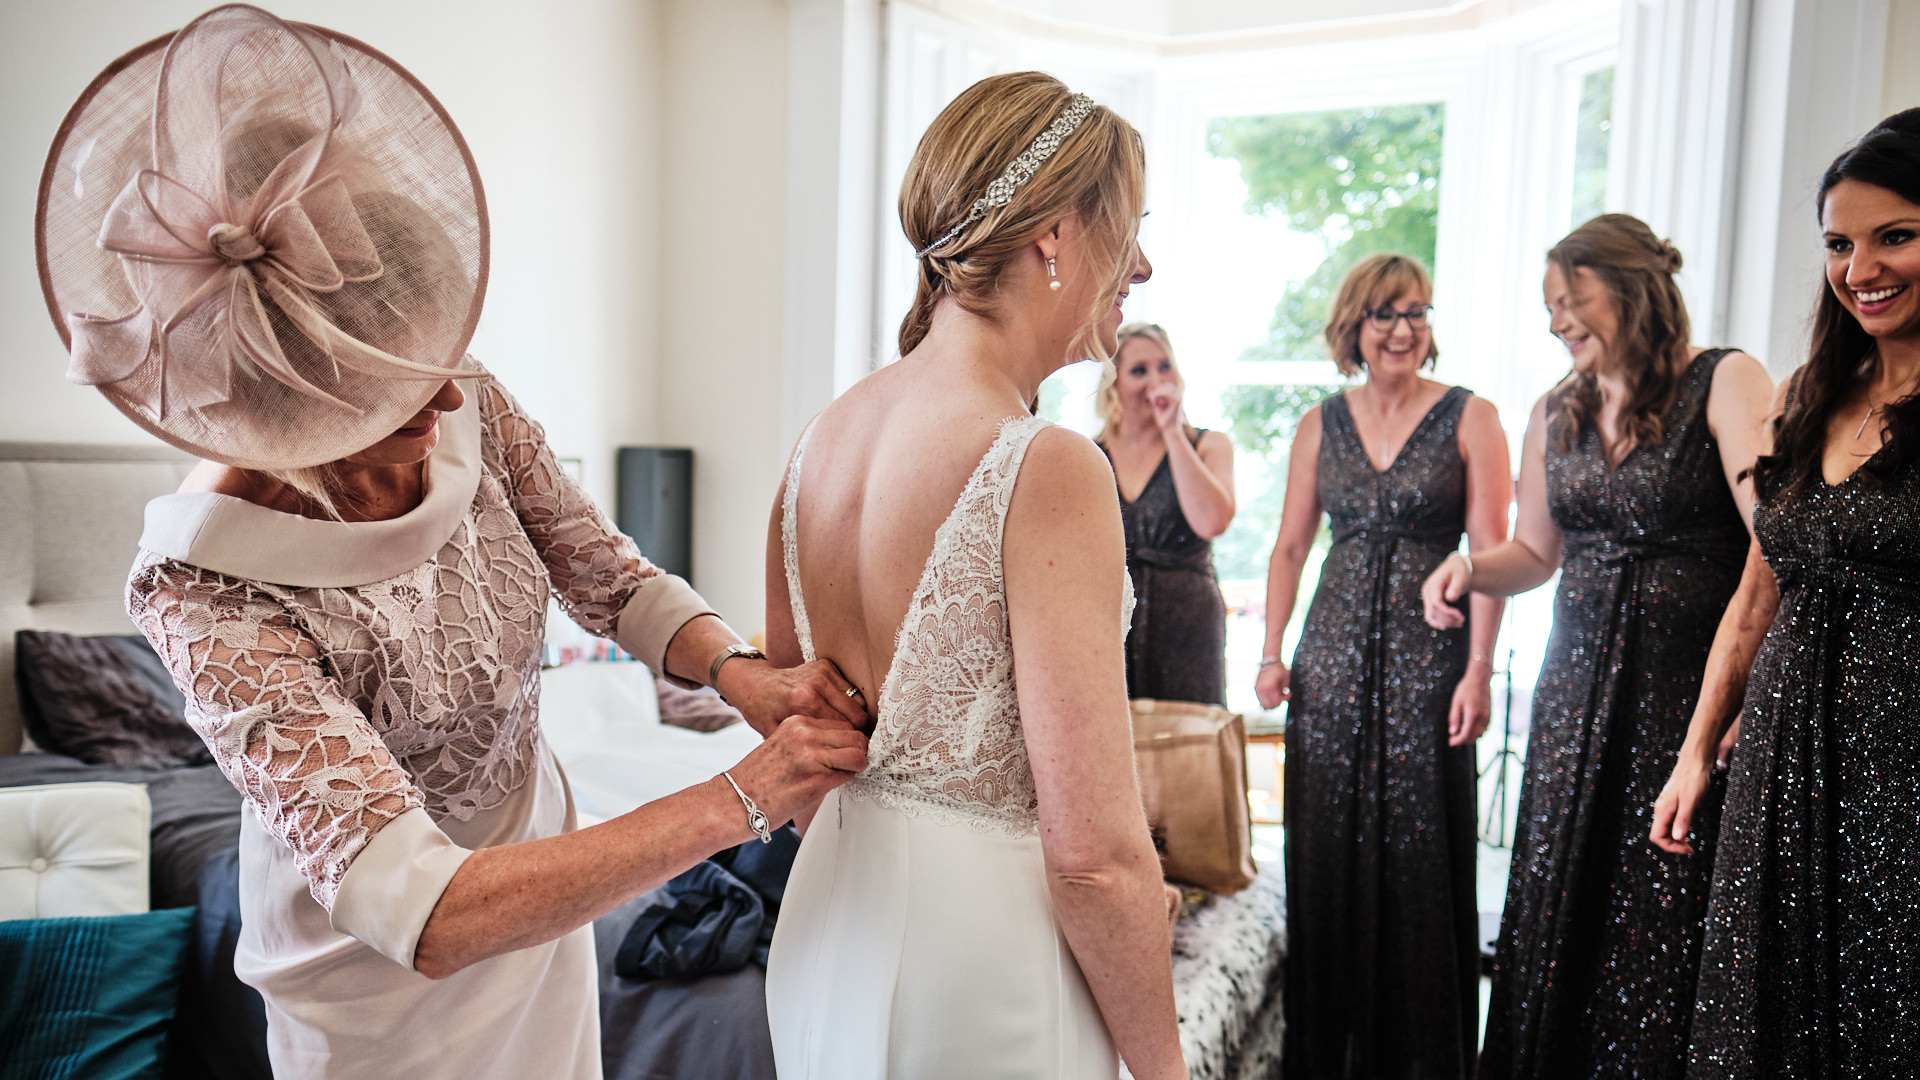 colour photograph of a the mother of the bride fastening up the back of her daughter's wedding dress before the wedding